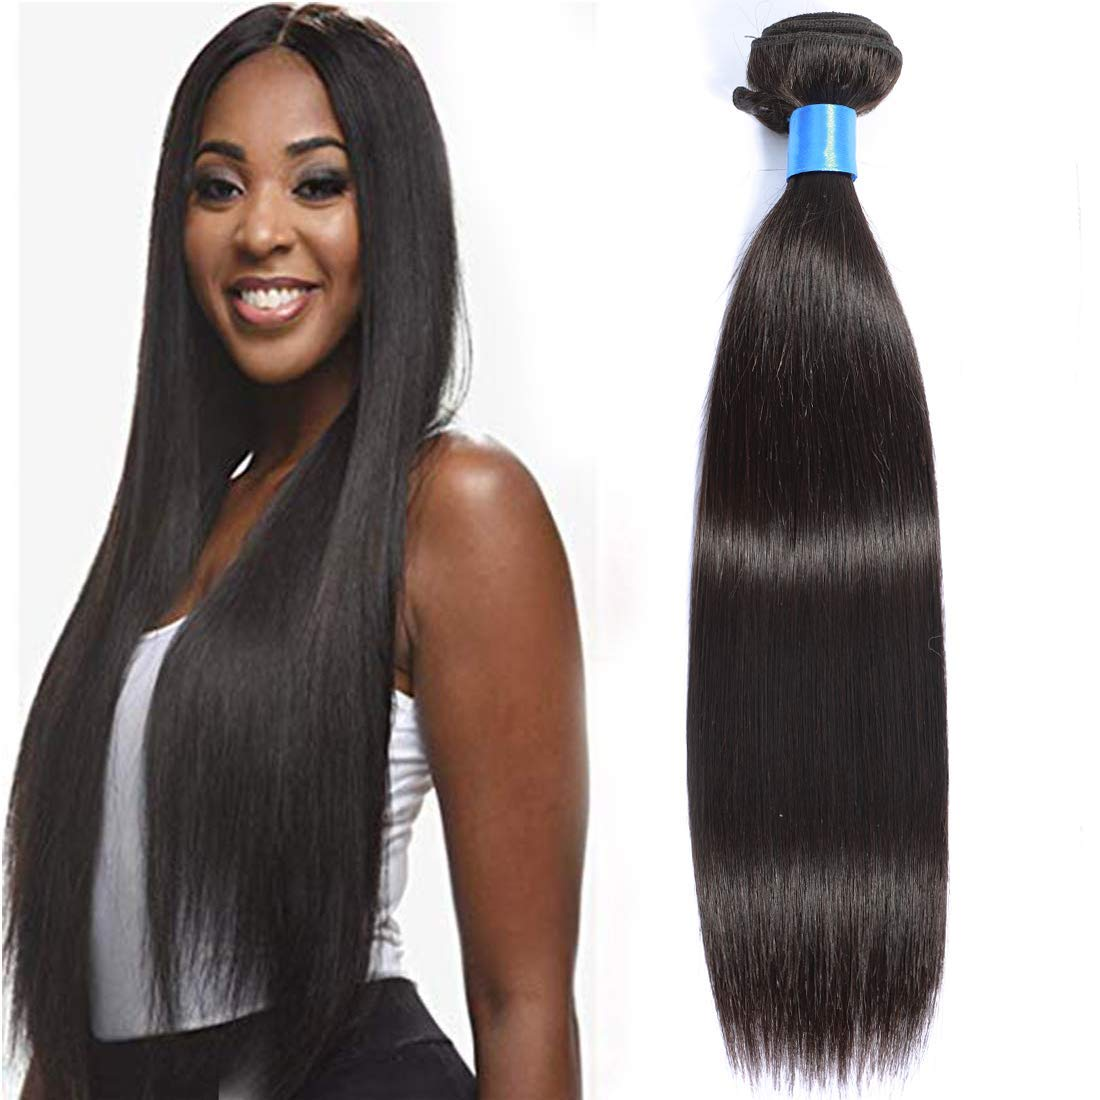 Cranberry Hair Brazilian Virgin Human Hair Straight Hair One Bundle Unprocessed Brazilian Virgin Human Hair Bundle Weave Extension Natural Black Color 28inch